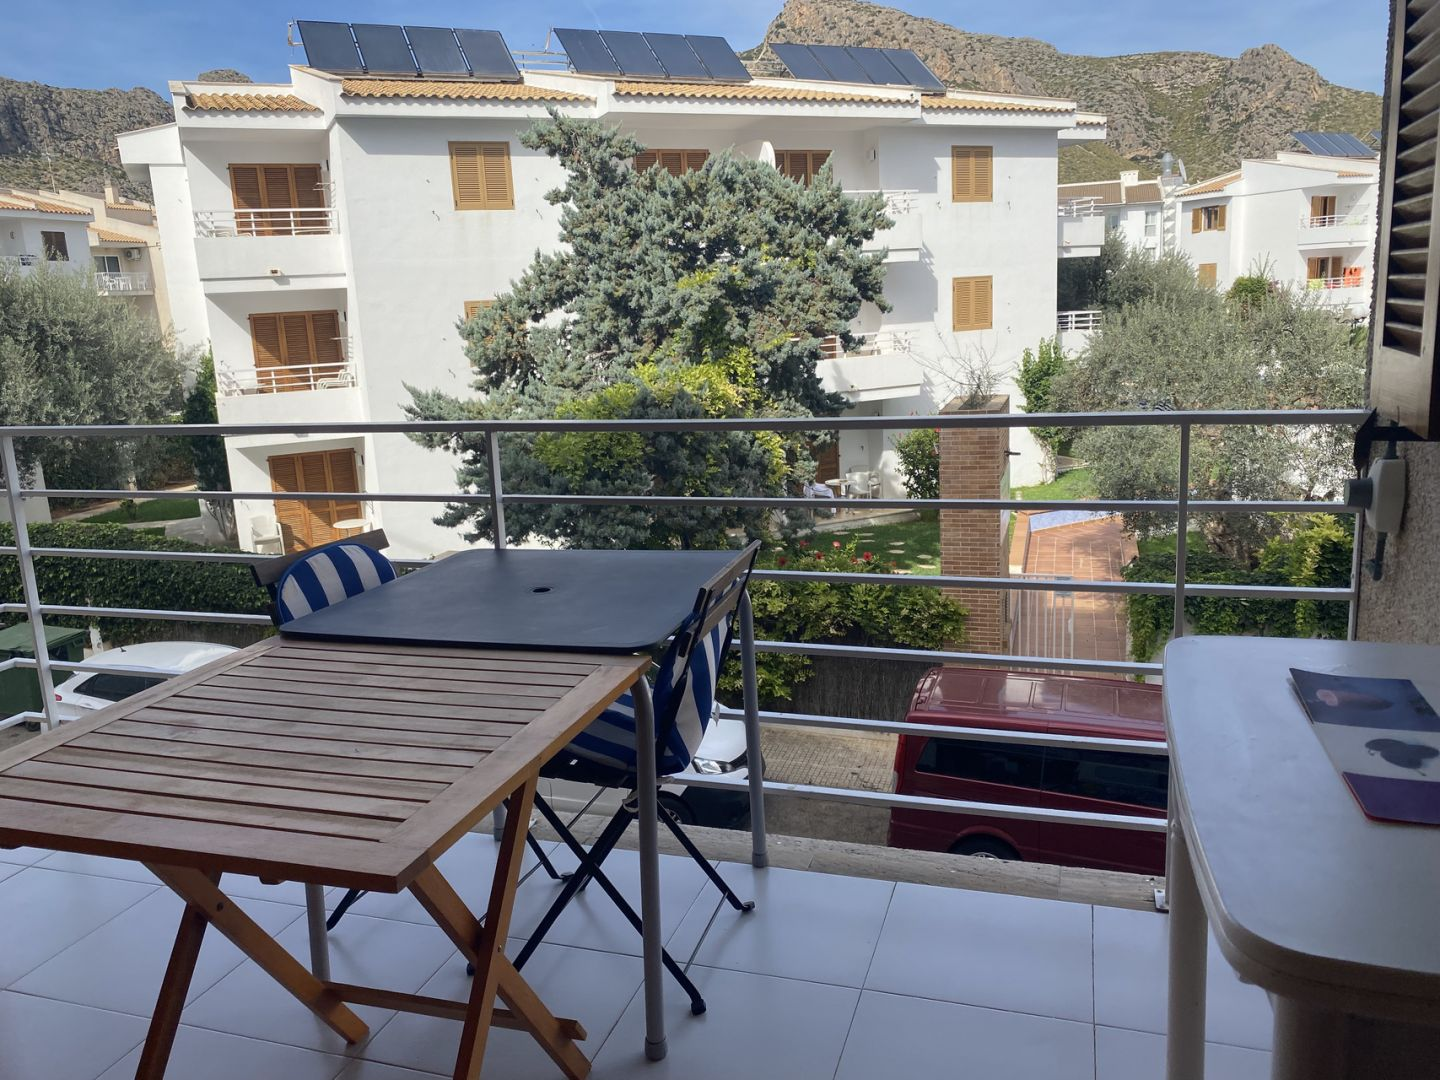 1 Bed Apartment for sale in Puerto Pollensa 6